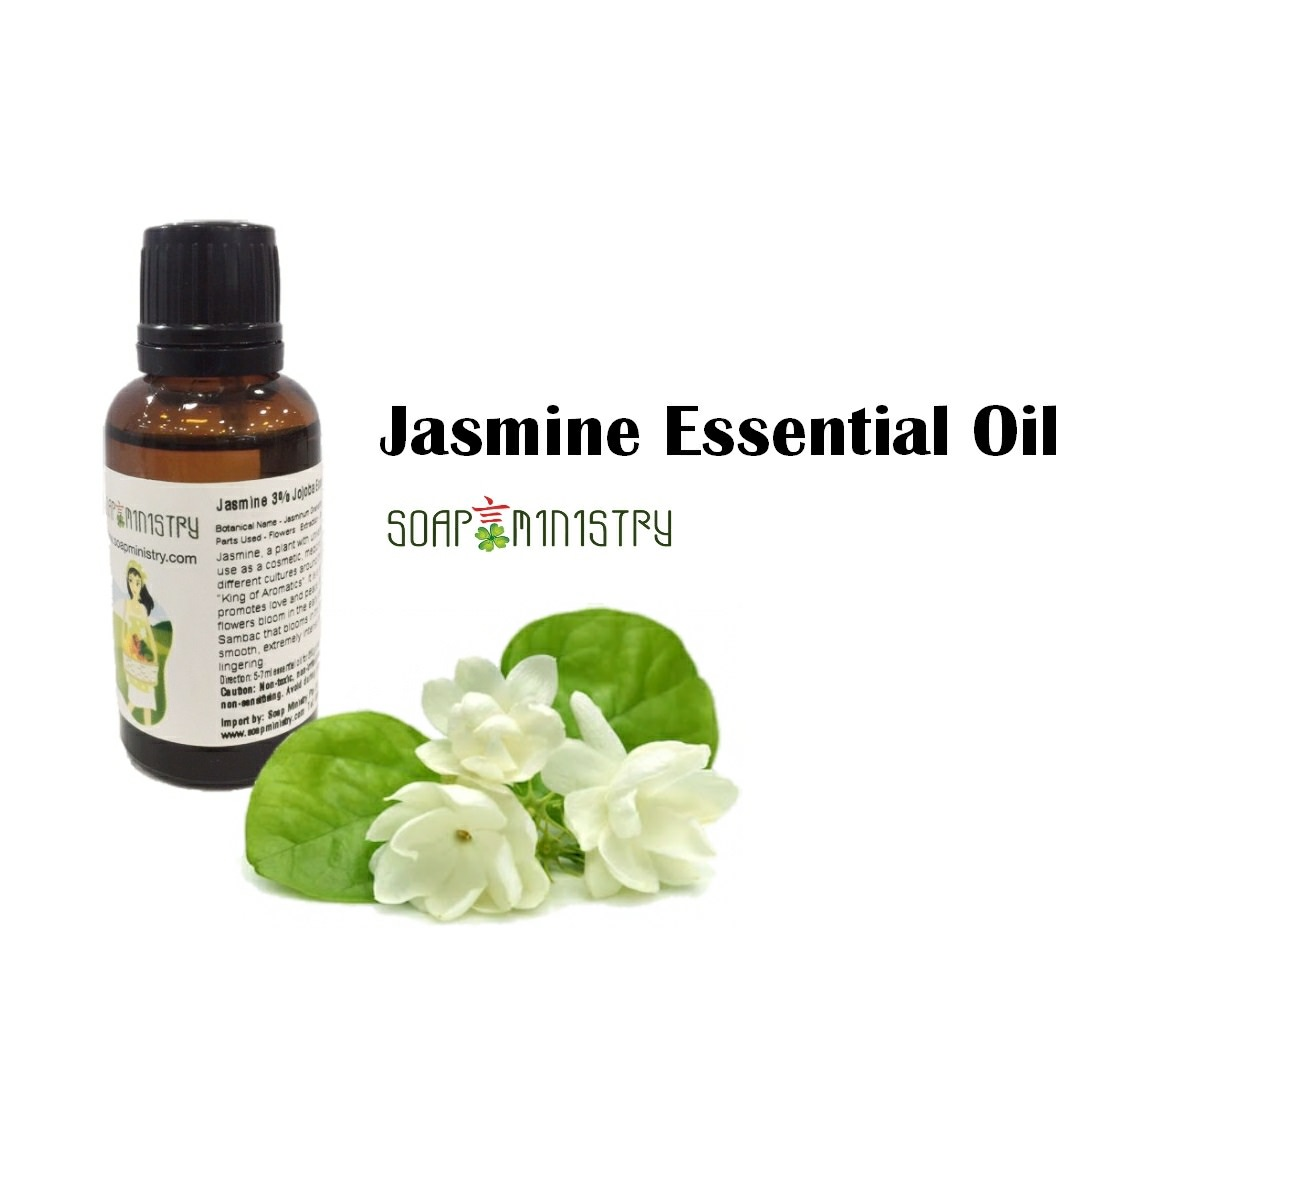 Jasmine 3 Jojoba Essential Oil 50ml